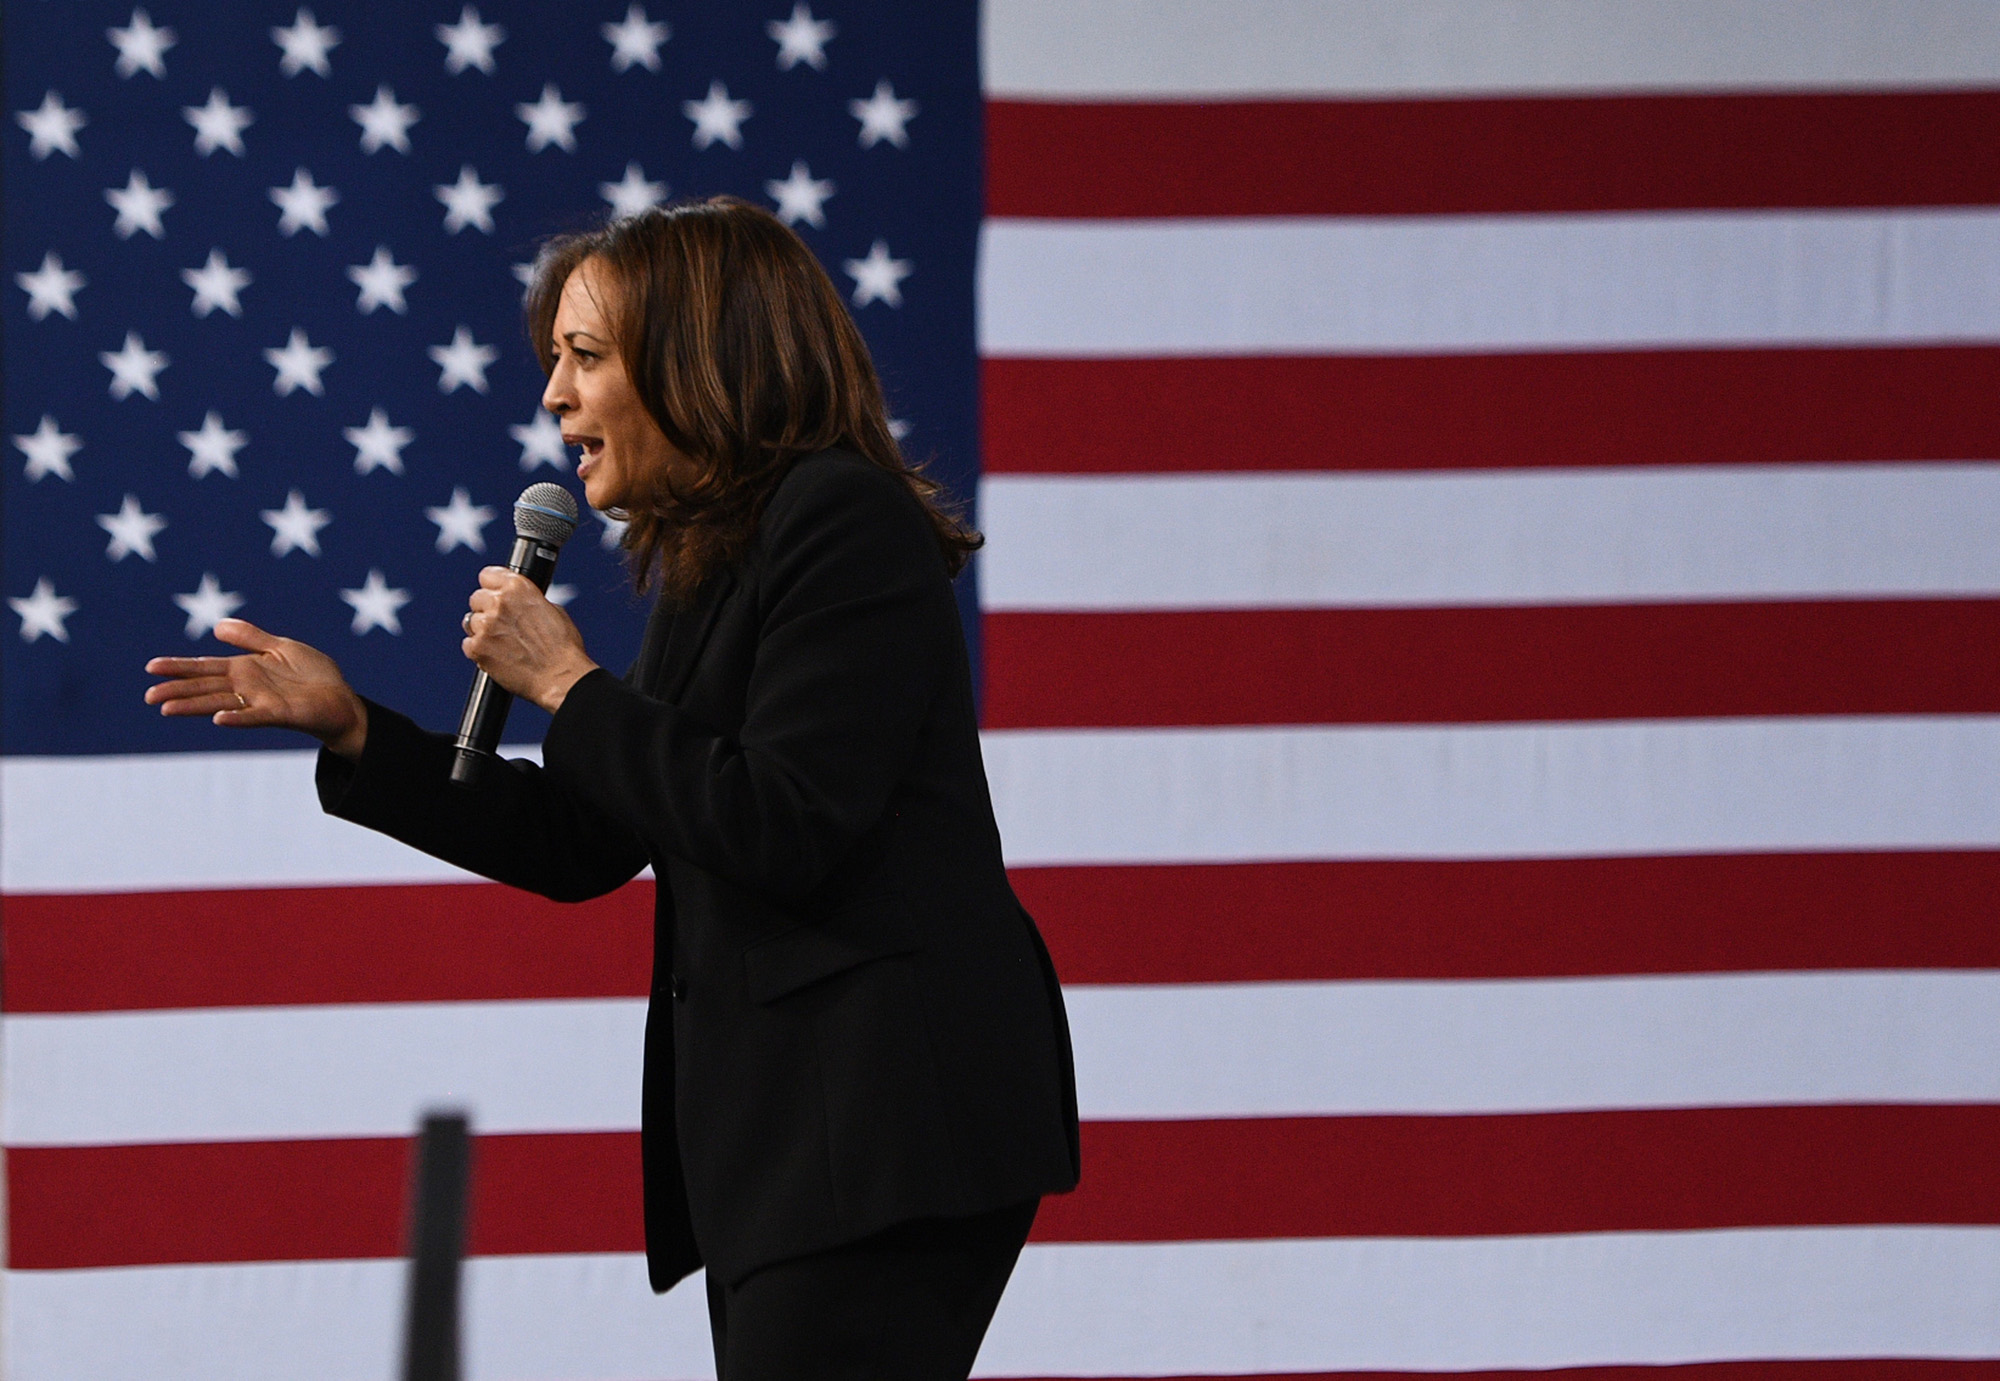 Biden Support Shrinks in Second Post-Debate Poll as Harris Rises